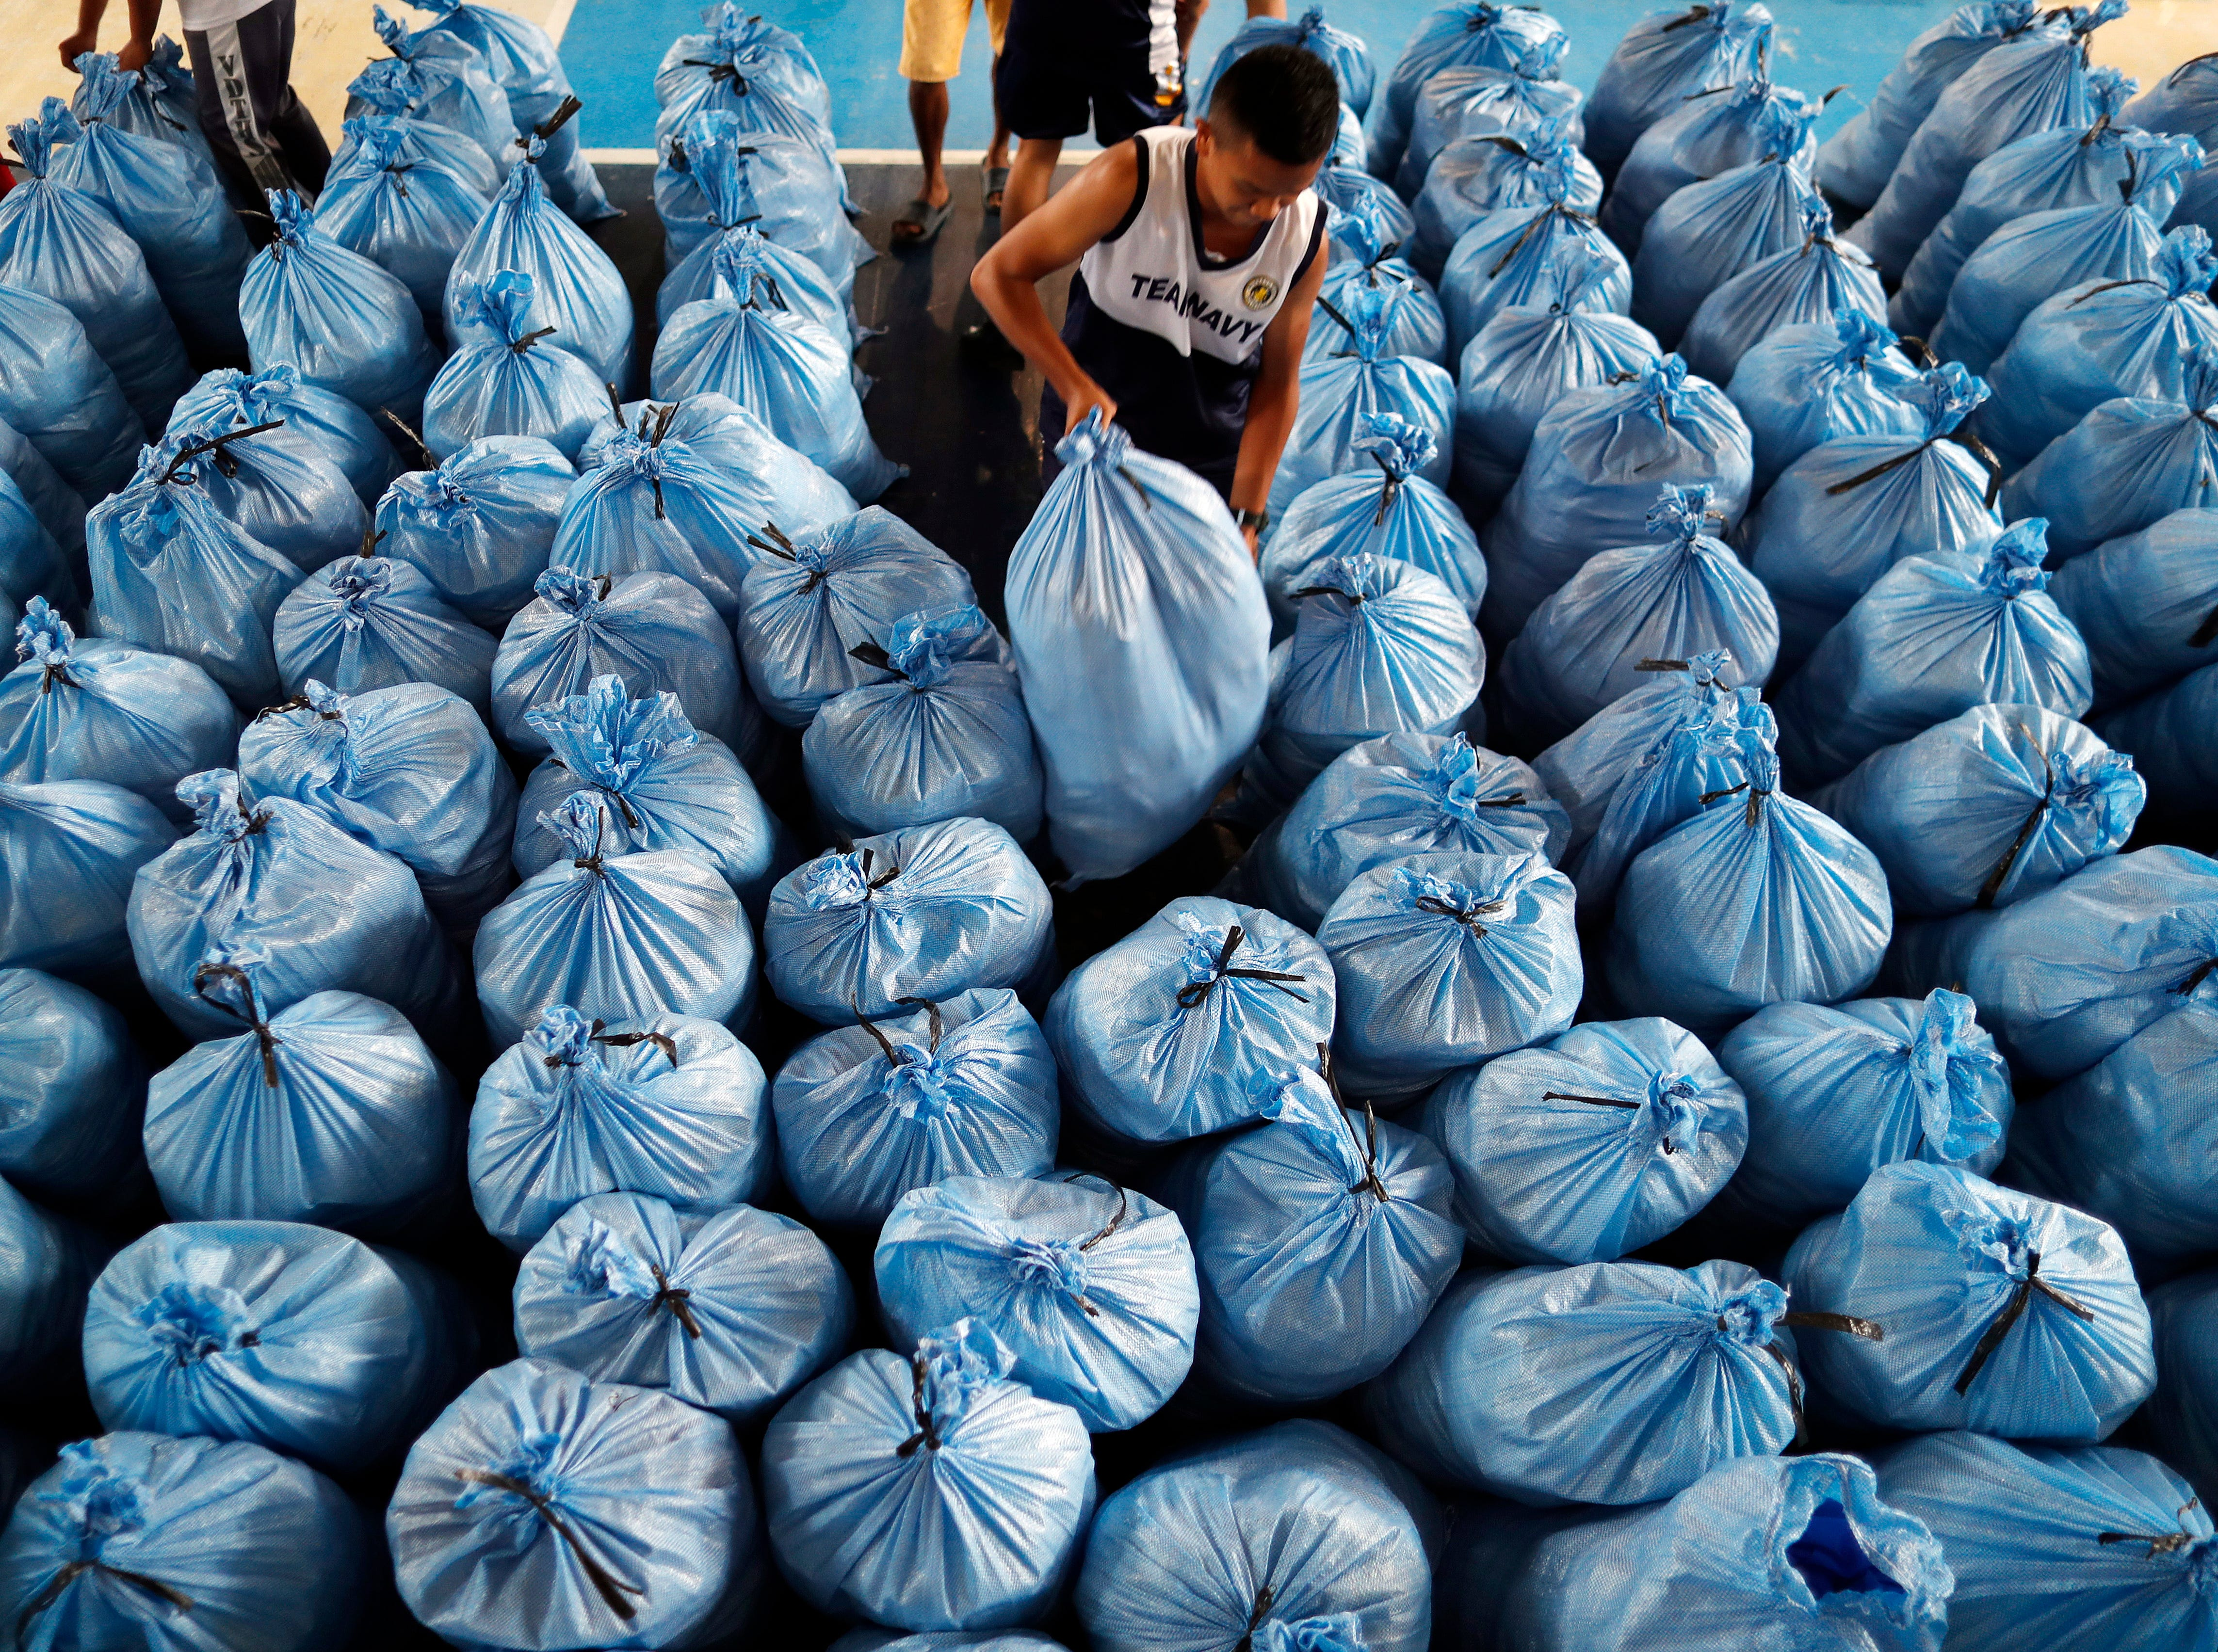 Filipino navy personnel carries a sack of relief goods in the typhoon-hit city of Tuguegarao, Cagayan province, Philippines on Sept. 16, 2018.